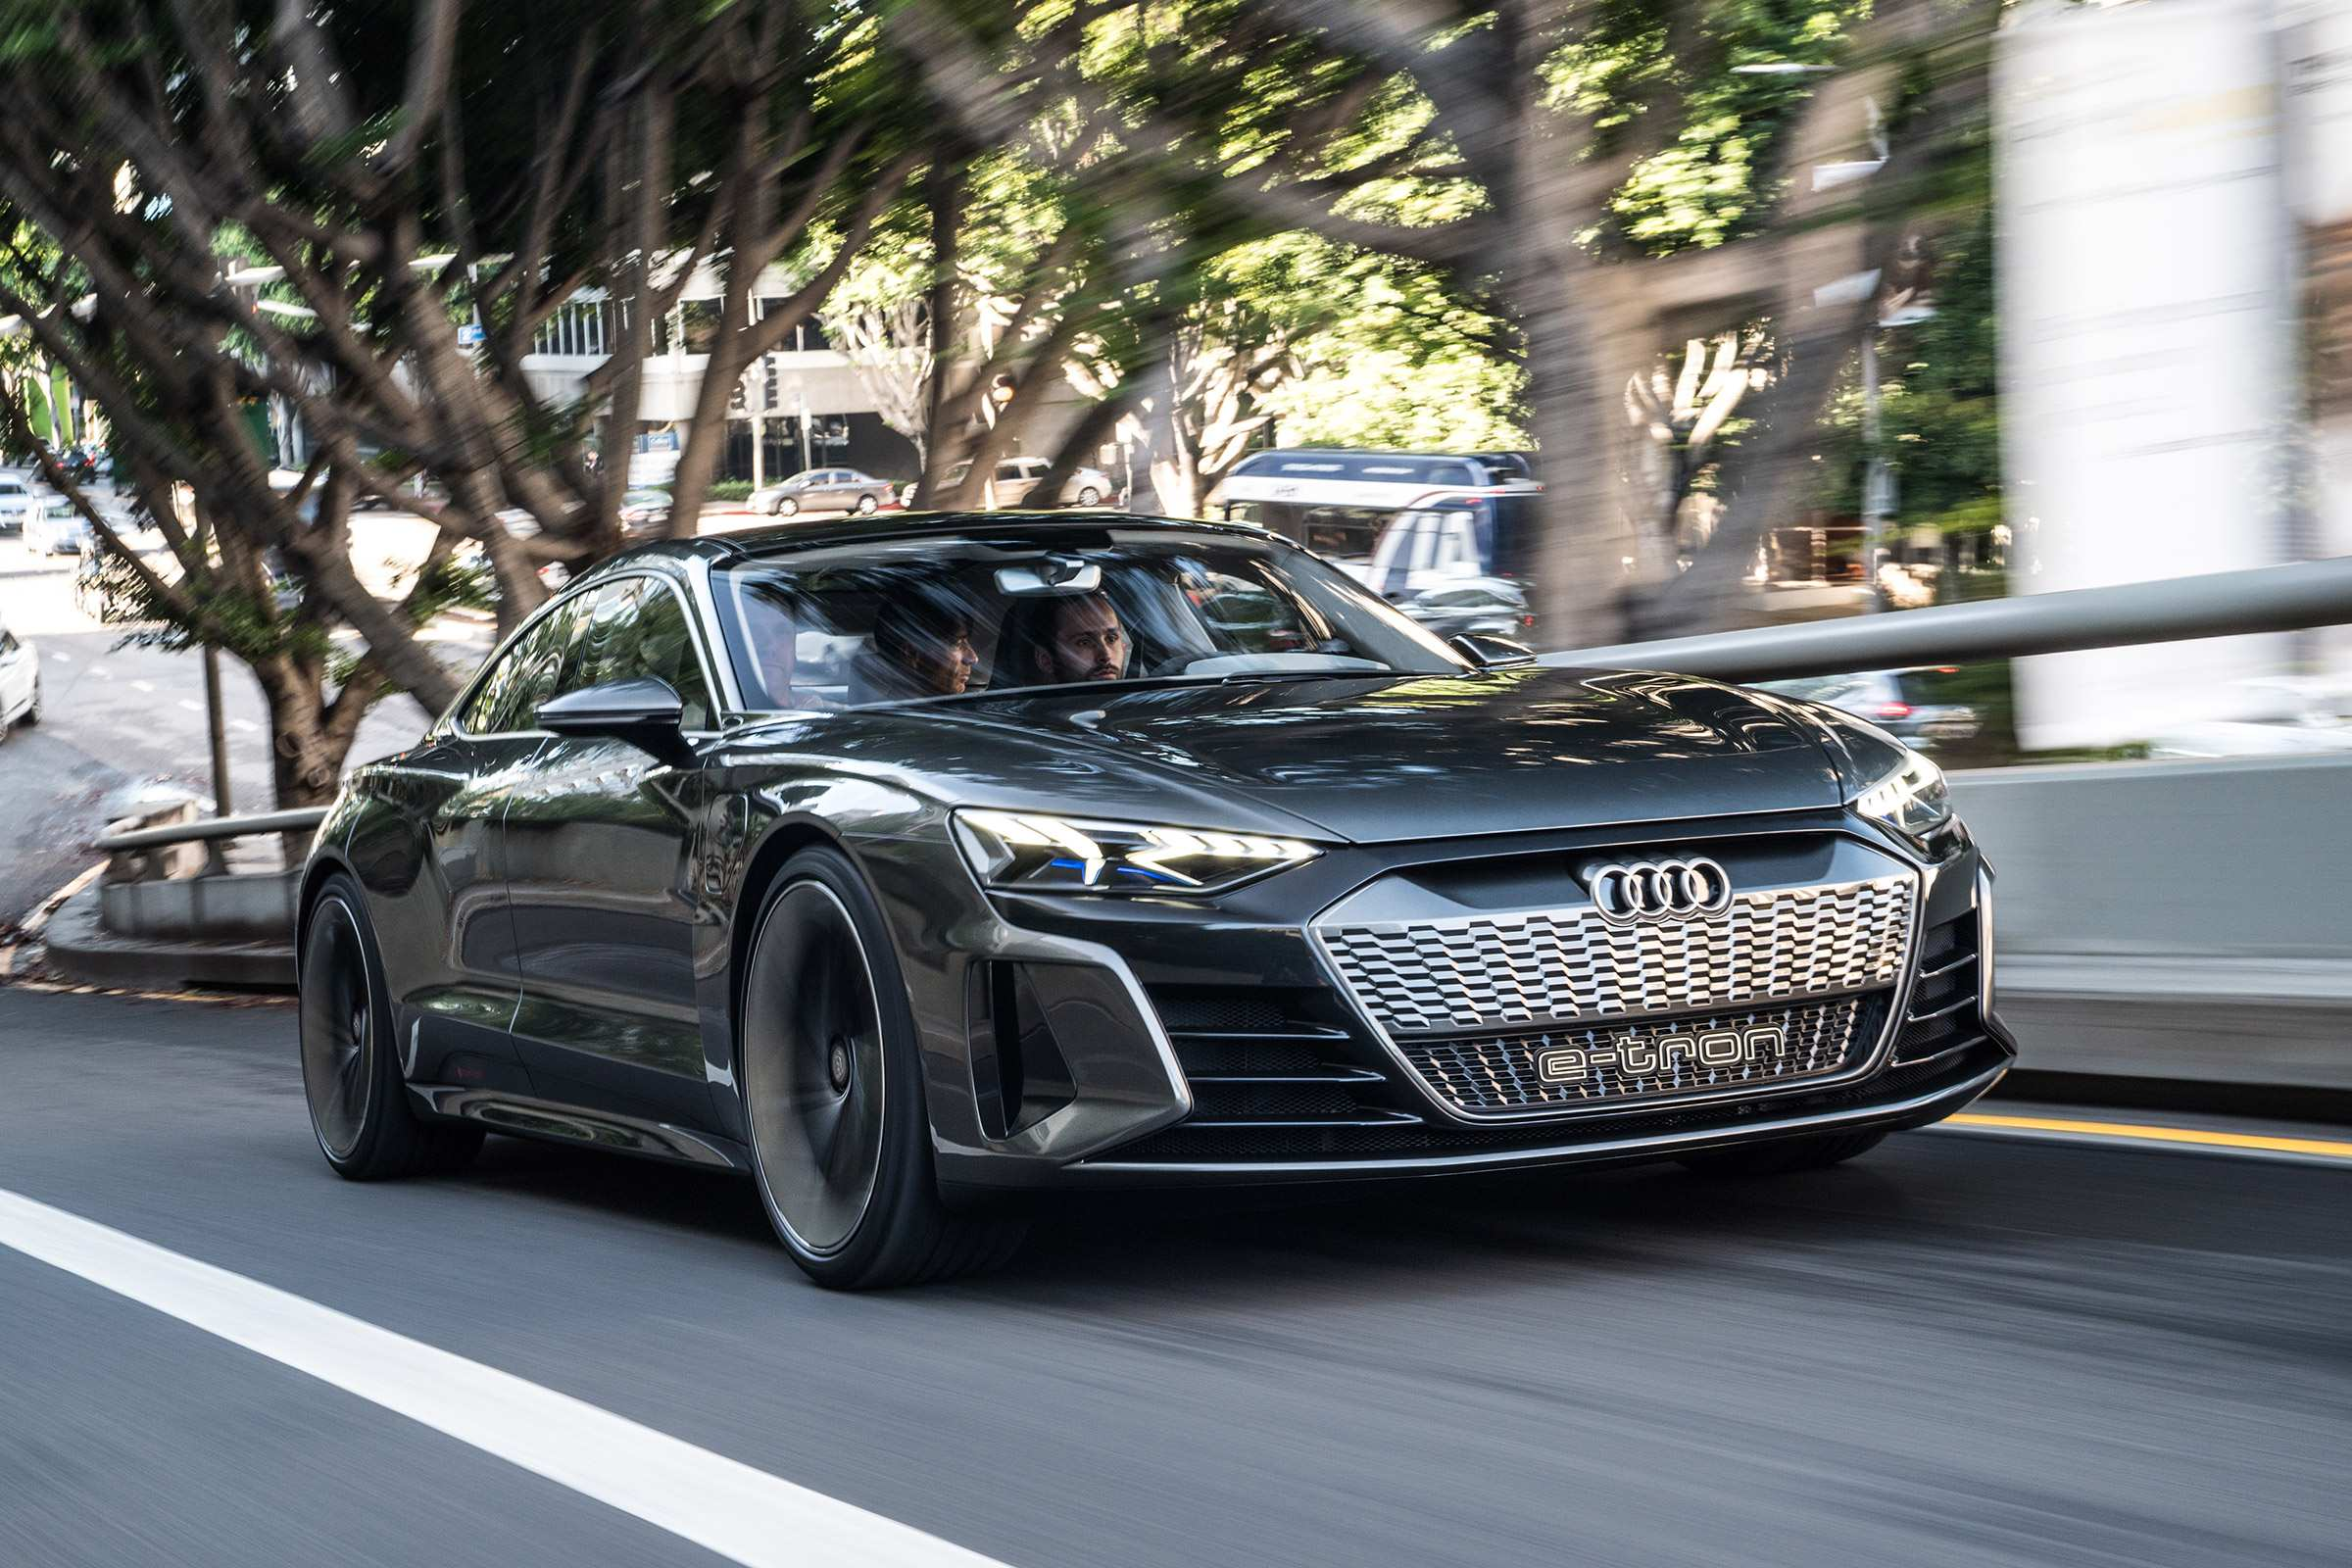 78 All New 2020 Audi R8 E Tron Prices